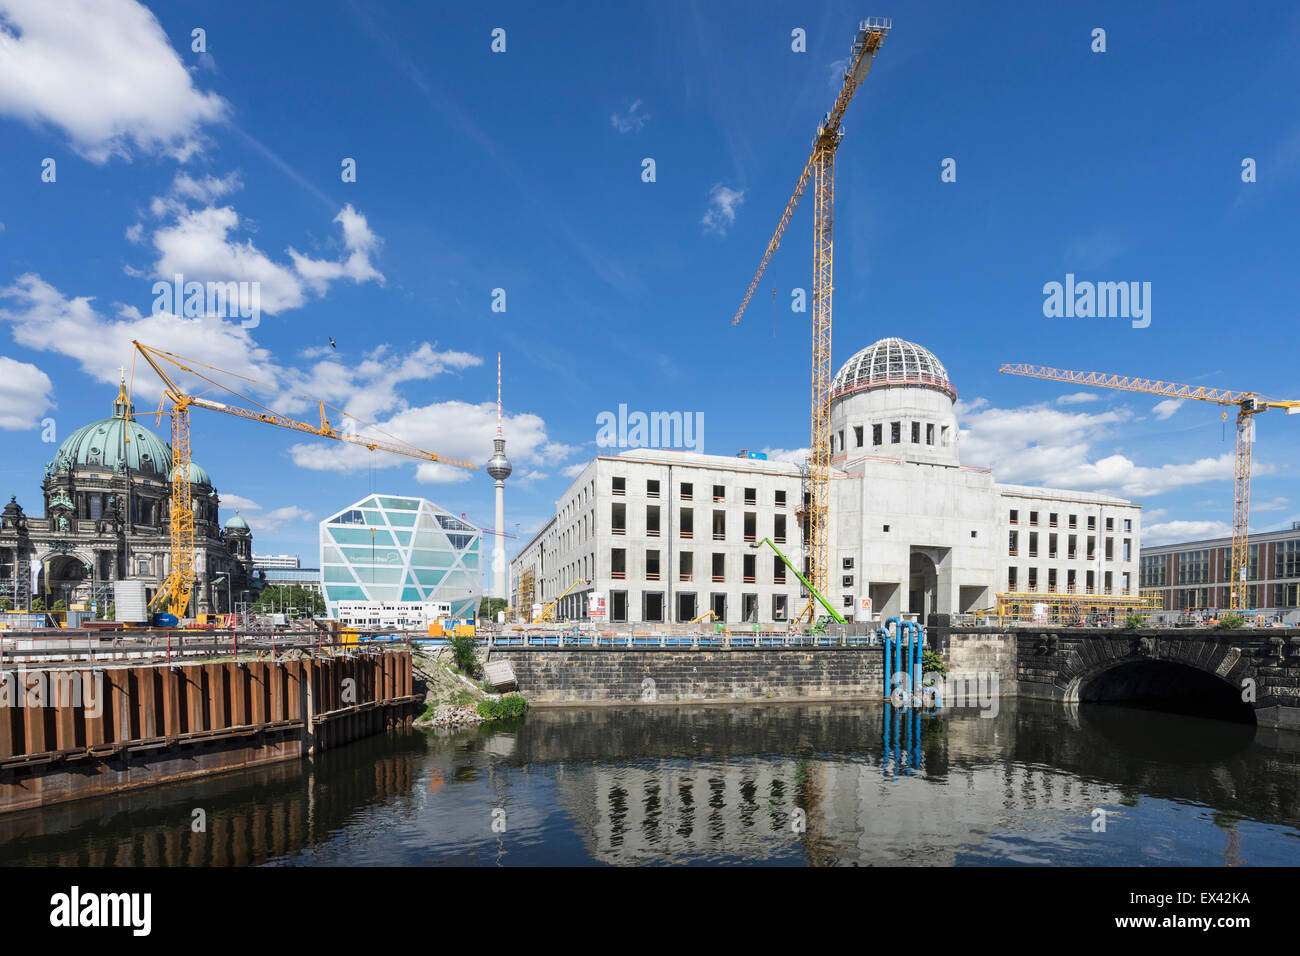 construction of new reconstructed berlin palace or berliner schloss stock photo 84912446 alamy. Black Bedroom Furniture Sets. Home Design Ideas